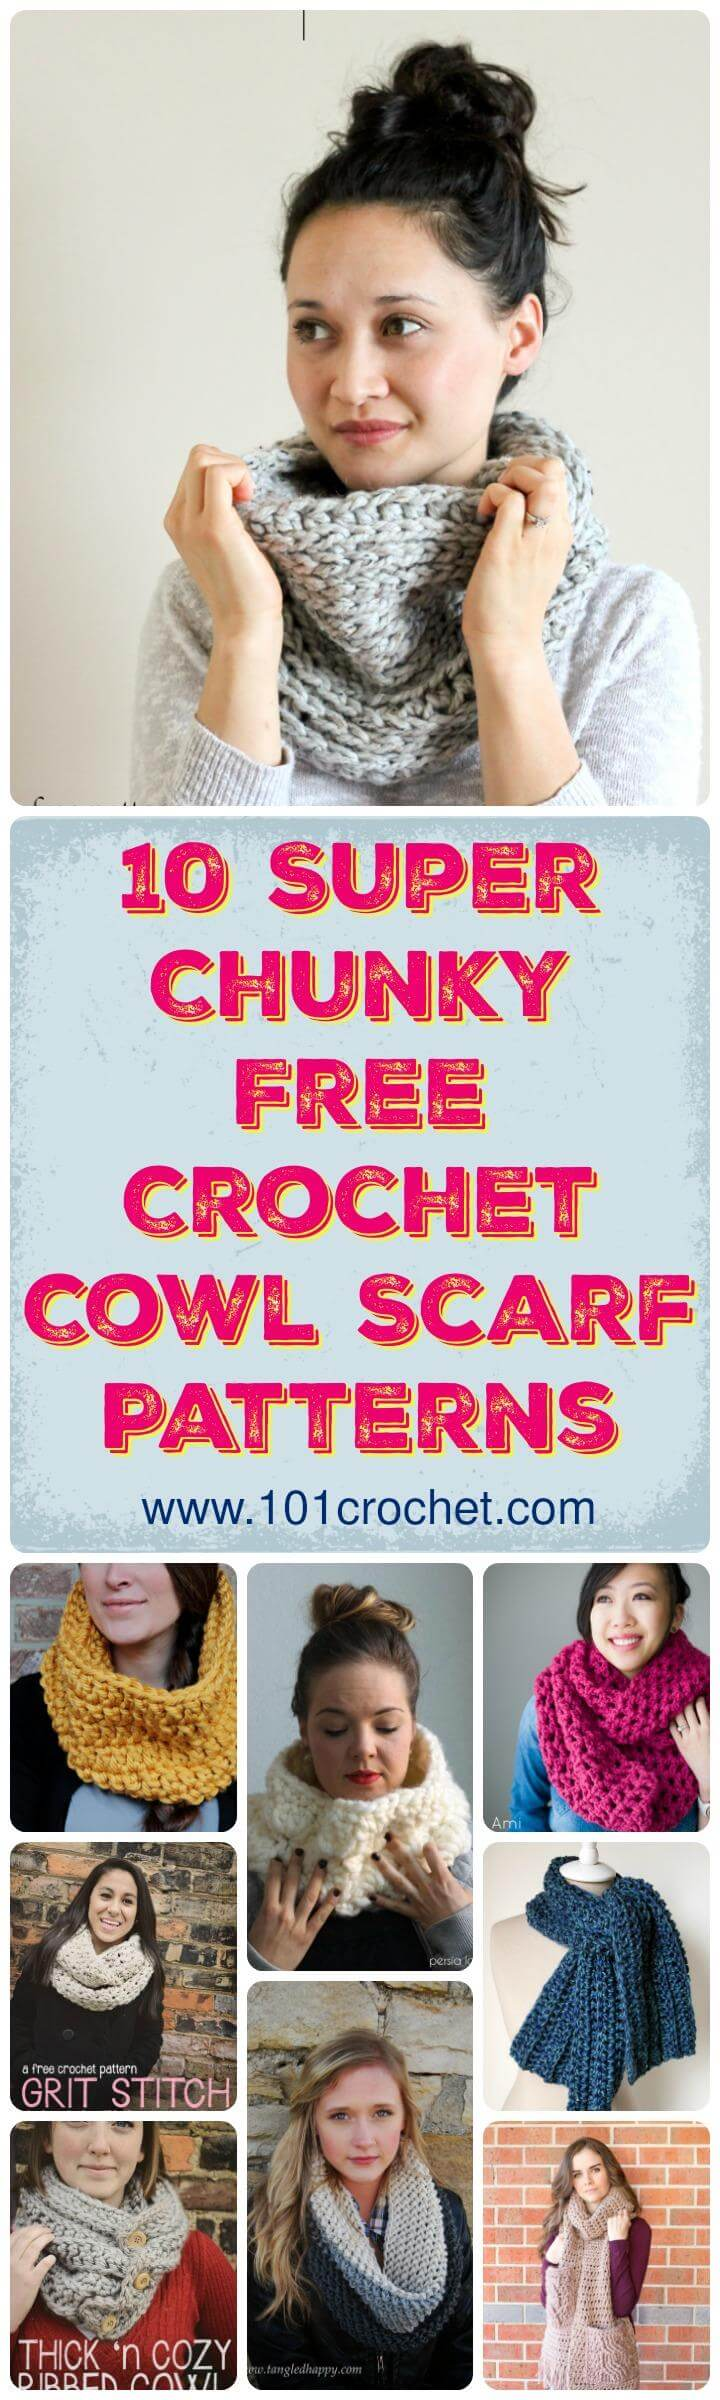 Free Crochet Cowl Scarf Patterns